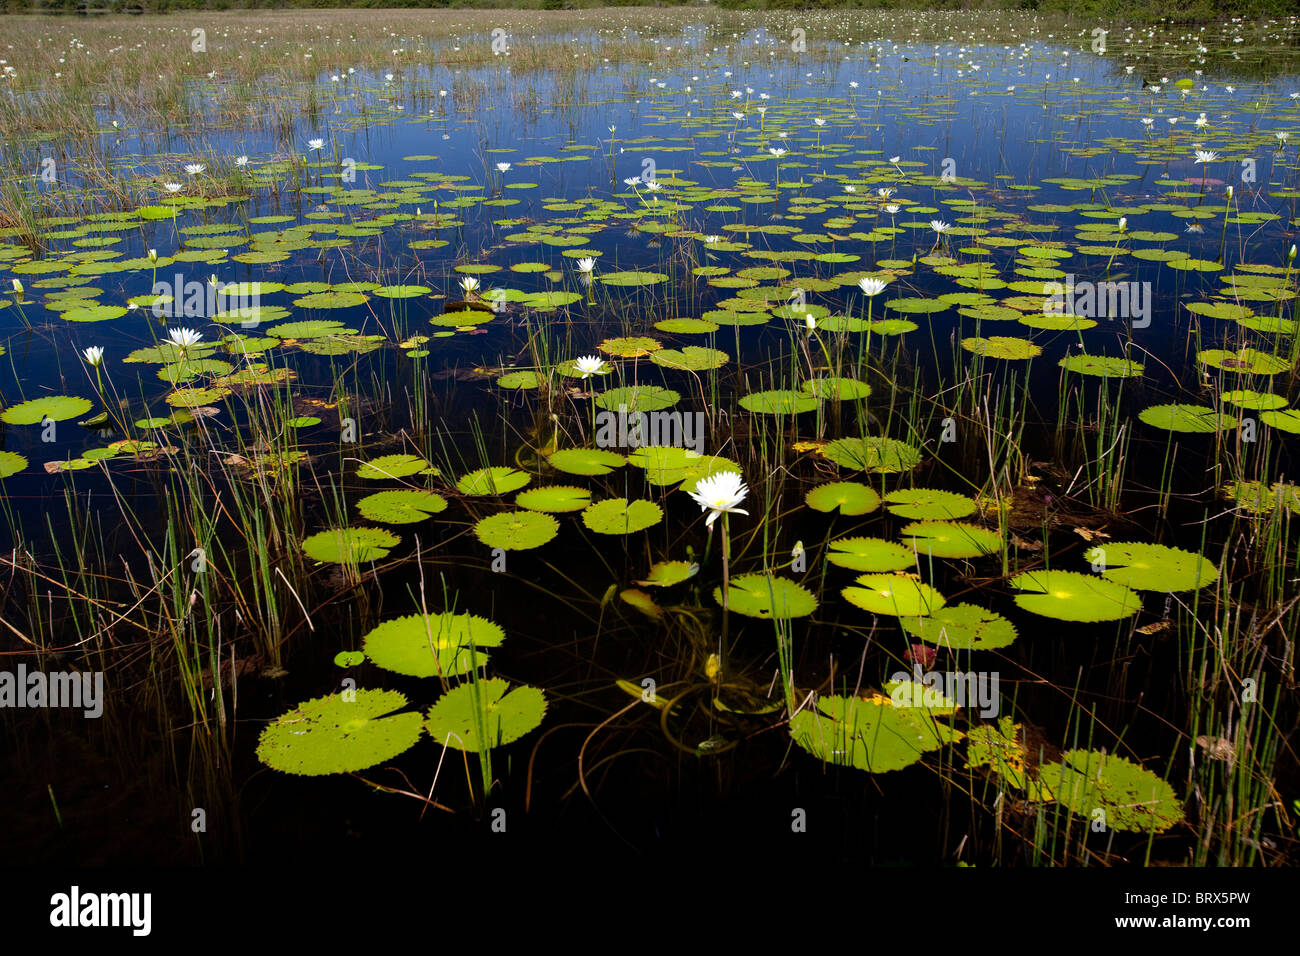 Lily pads line a mangrove in Belize. - Stock Image